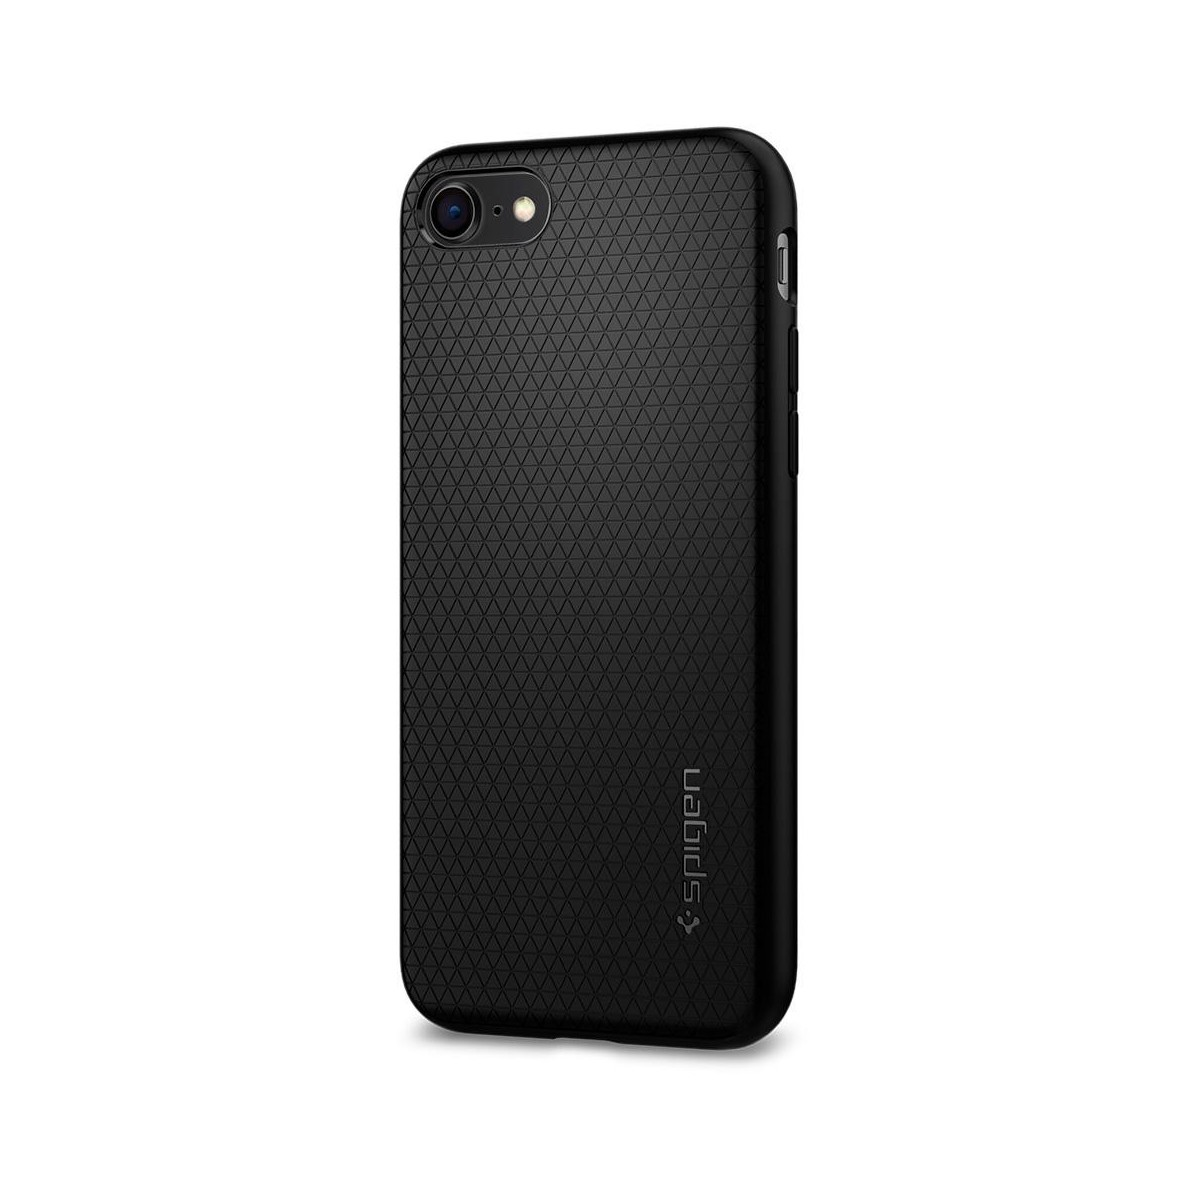 Coque iPhone 7 / 8 Liquid Air noir mat - Spigen